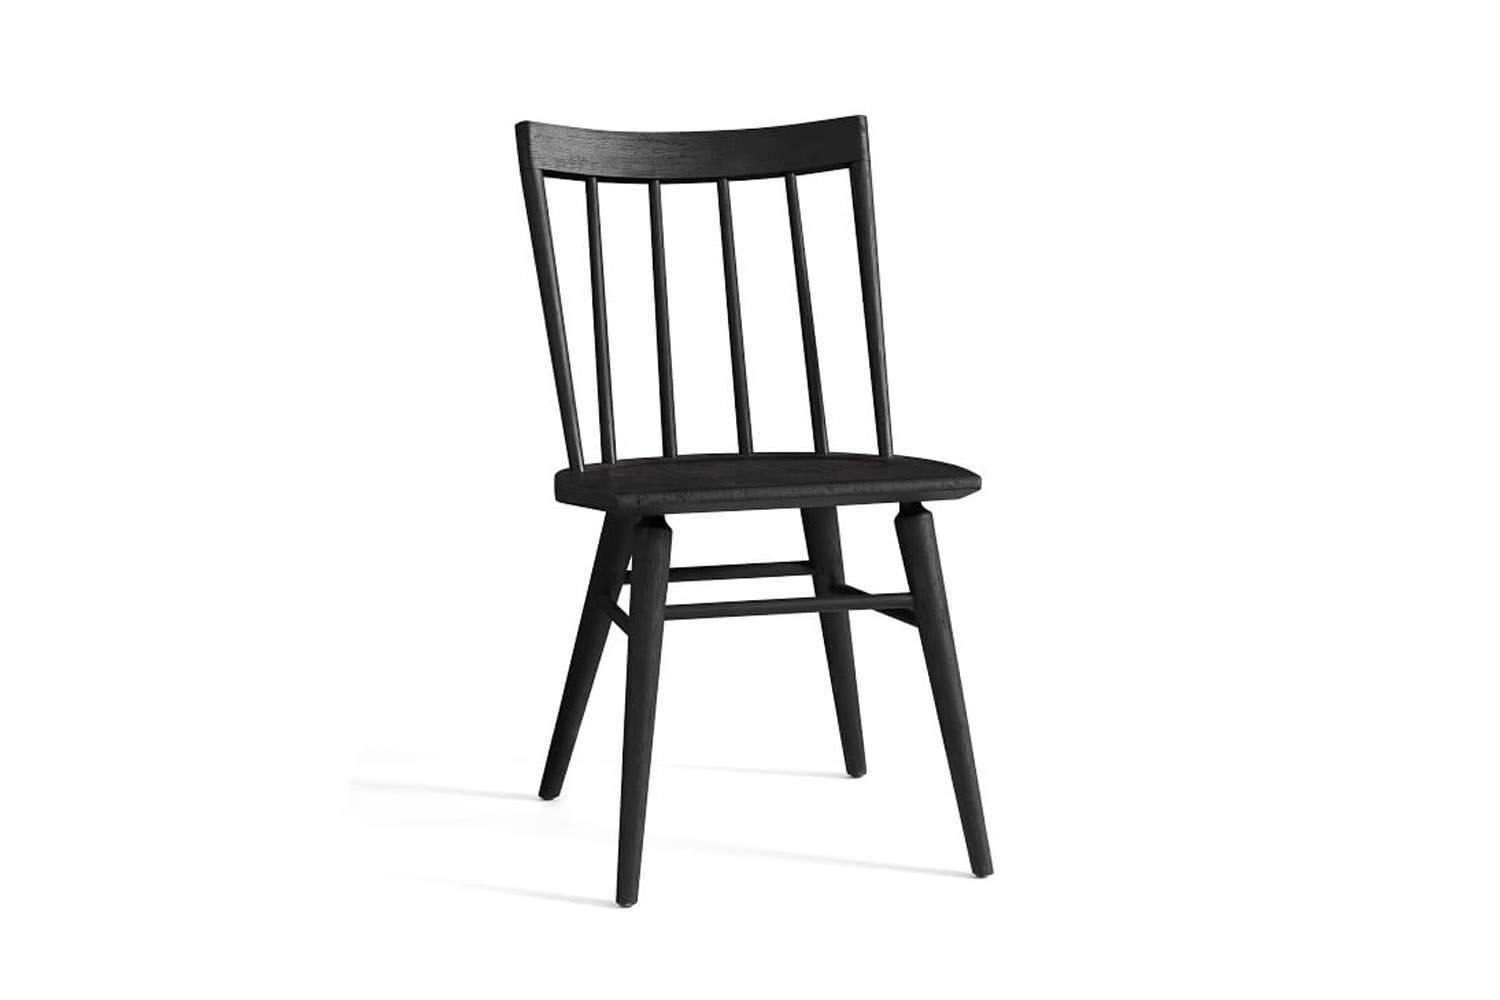 the pottery barn shay dining chair is \$\199. 17